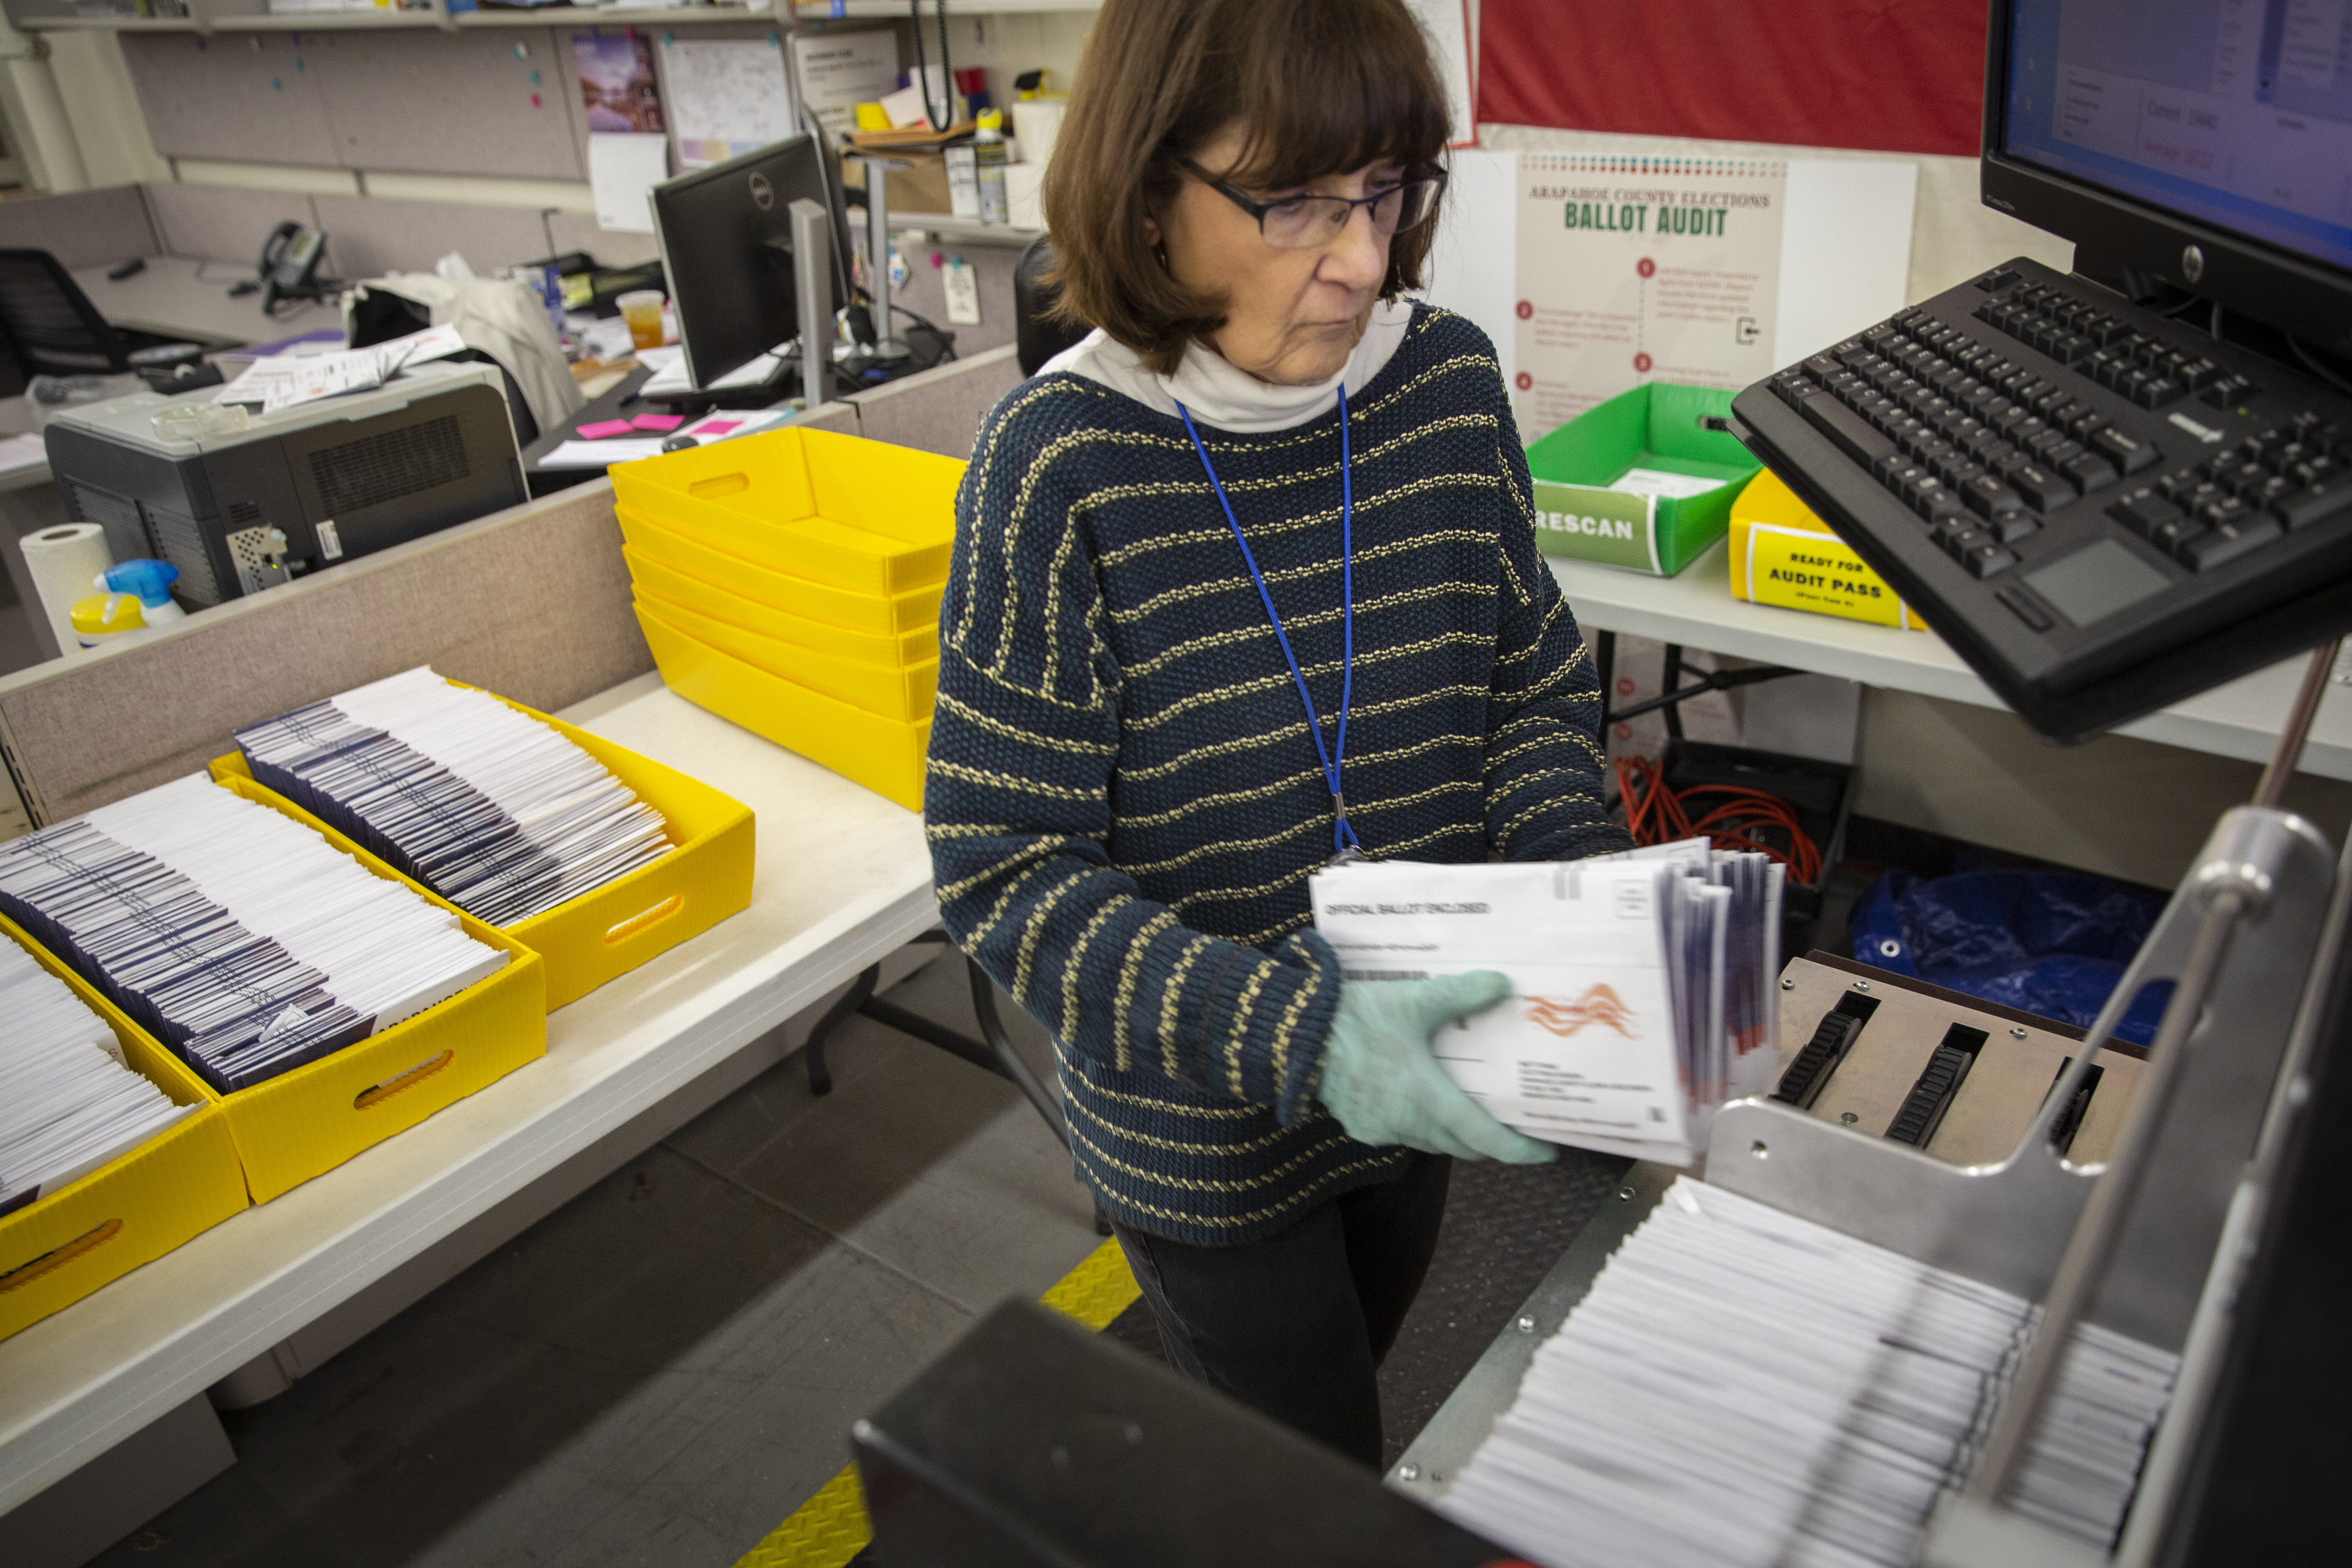 Marleen Cohen of Aurora loads ballots into a sorting machine atthe Arapahoe County Elections Facility in Littleton, Colorado, Tuesday, Oct. 30, 2018.